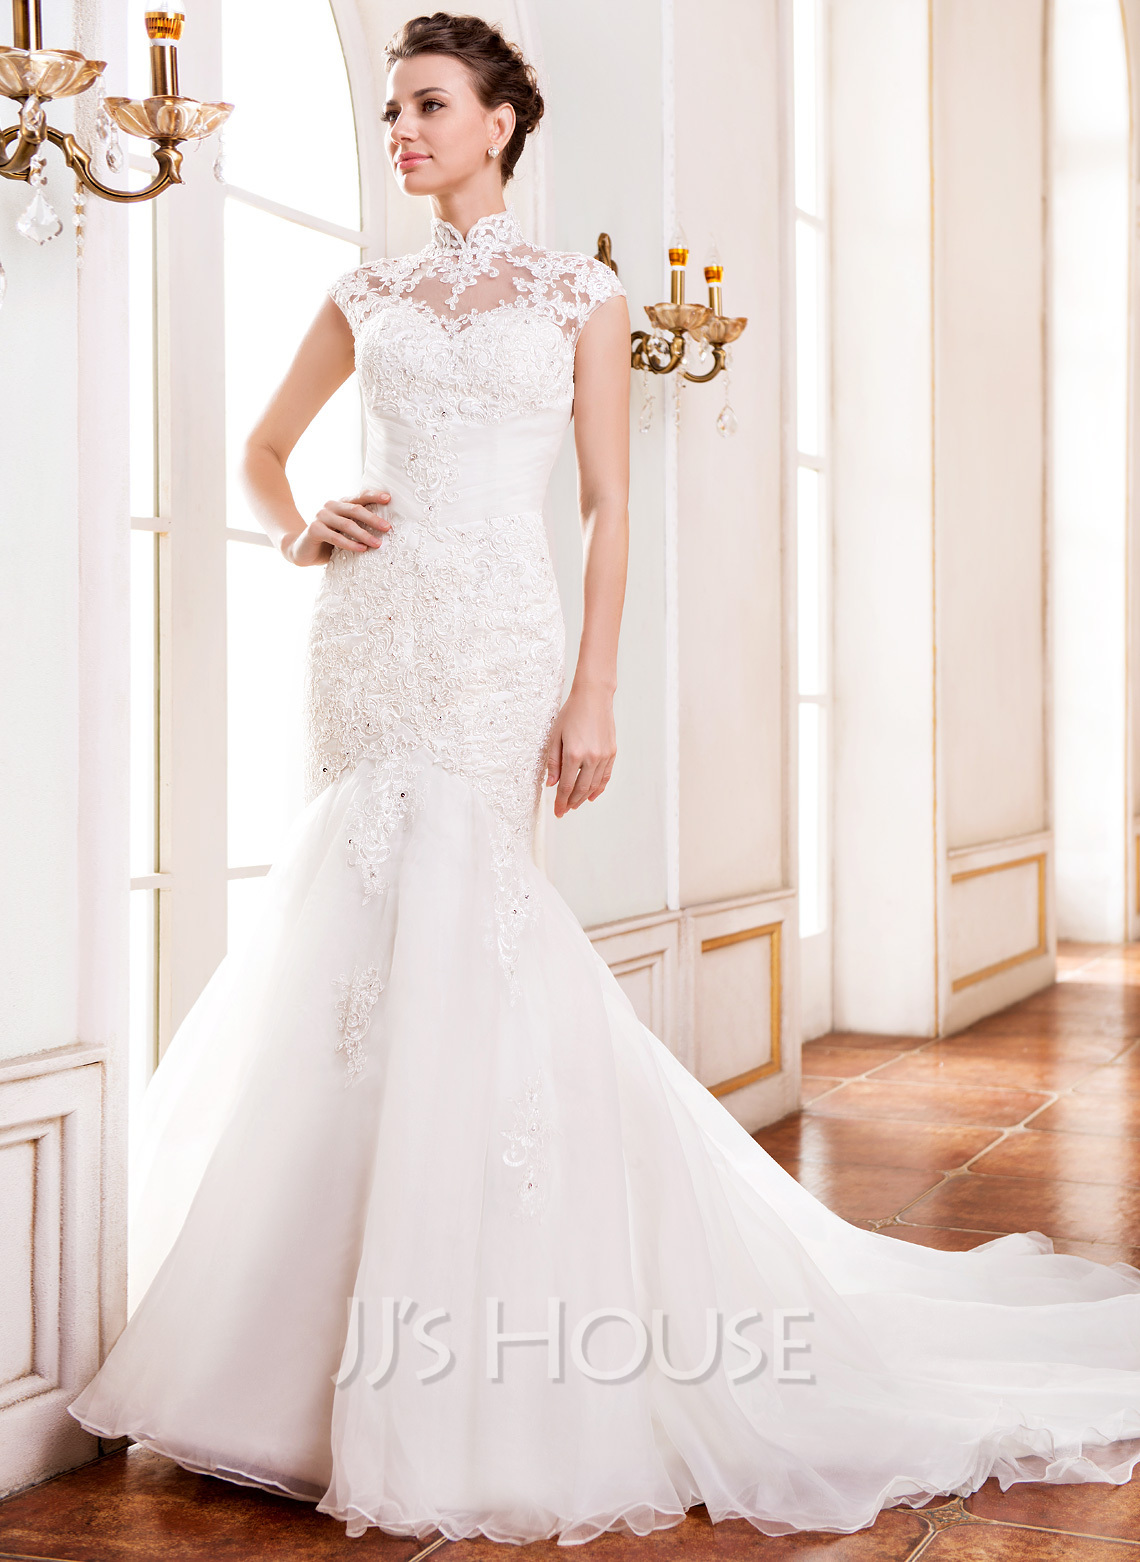 Trumpet Mermaid High Neck Cathedral Train Organza Lace Wedding Dress With Beading Sequins g jjs house wedding dresses Home Wedding Dresses Loading zoom